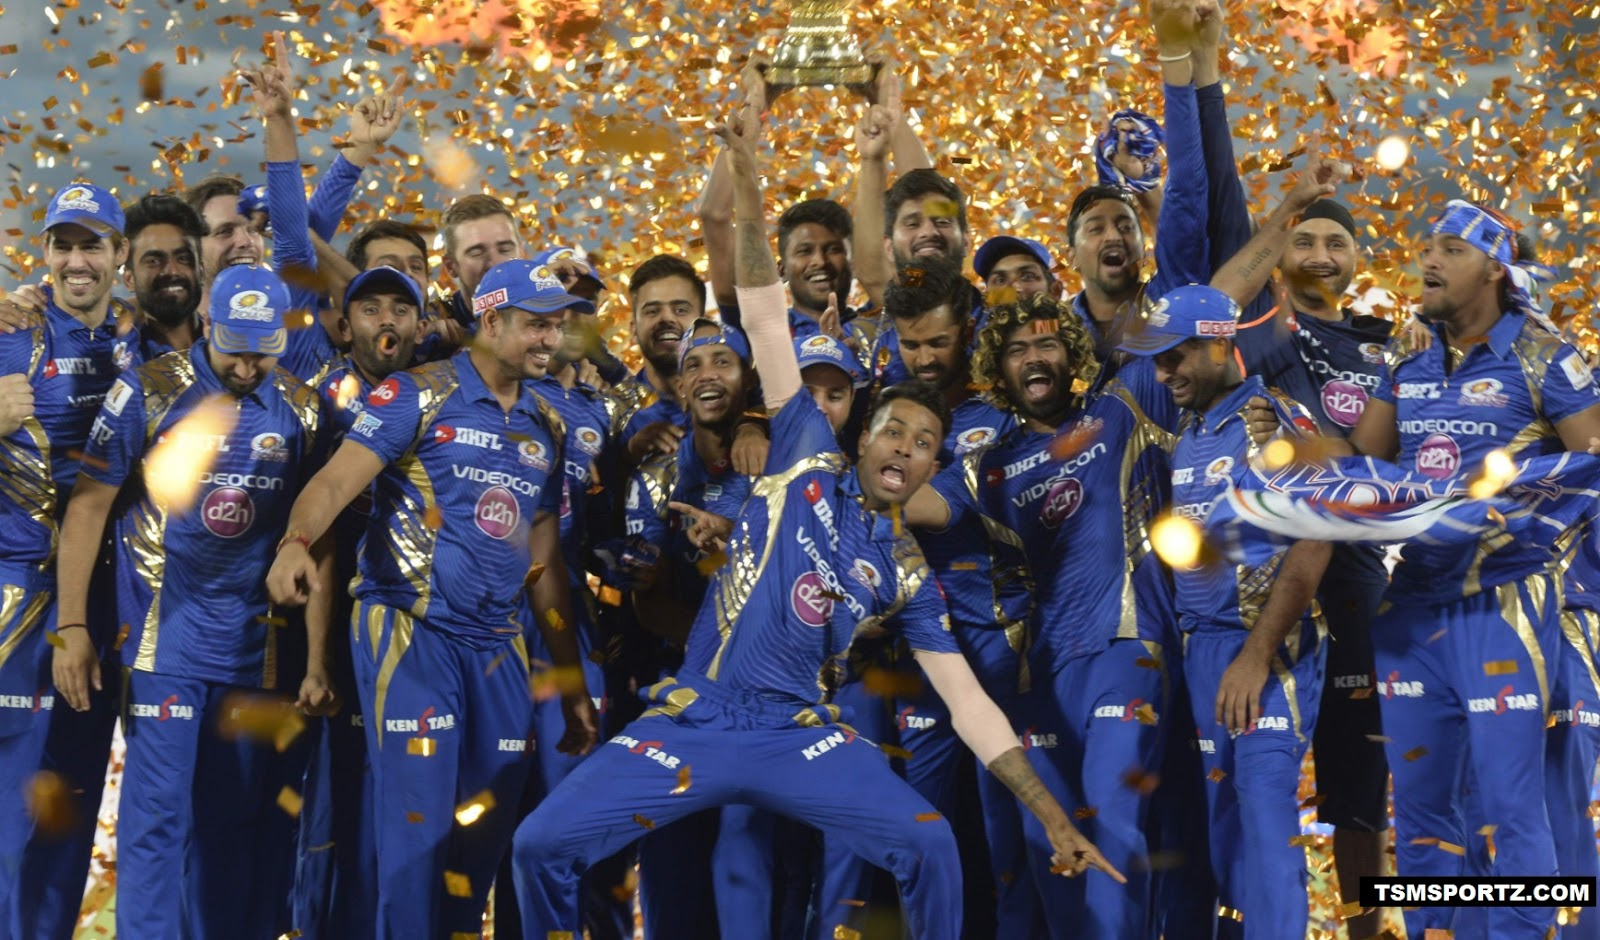 IPL is among most popular cricket T20 leagues in world